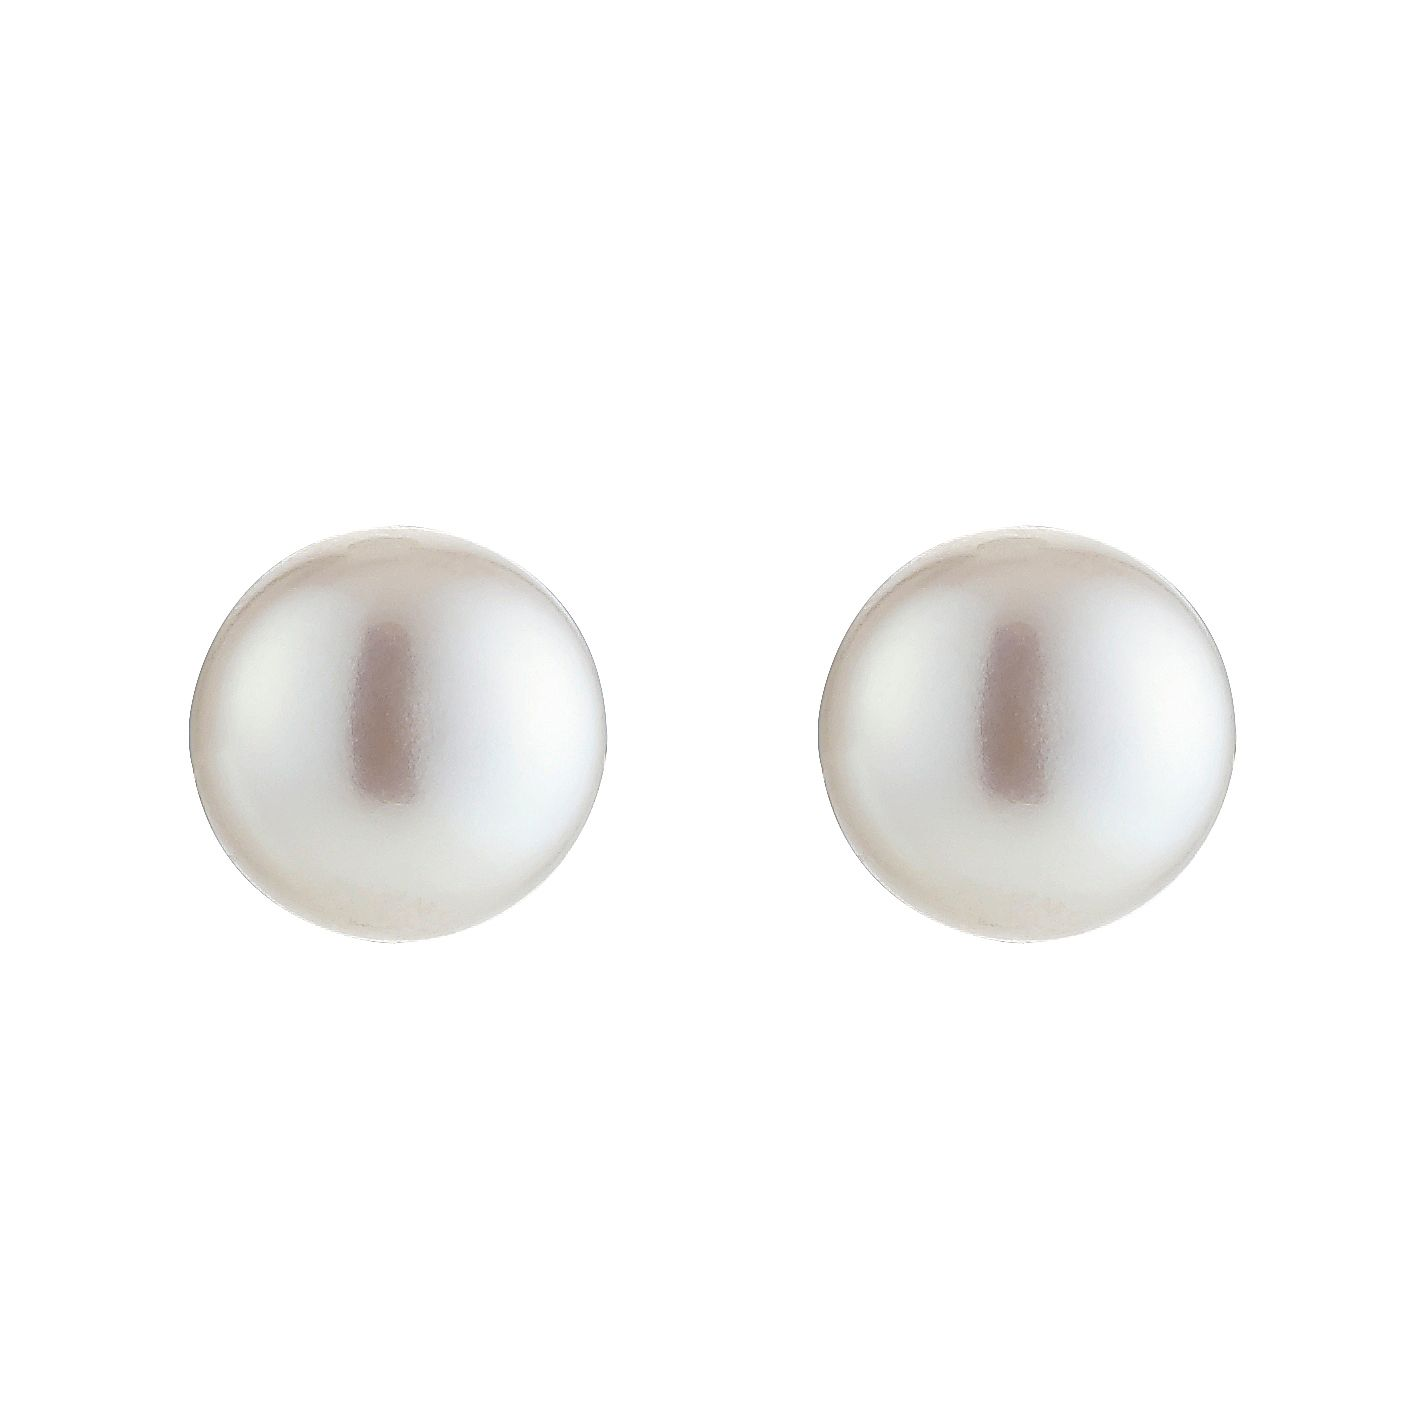 dia hook wg sea wse shepherd sizes pearl and earrings south diamond white shphk peral aaa choose